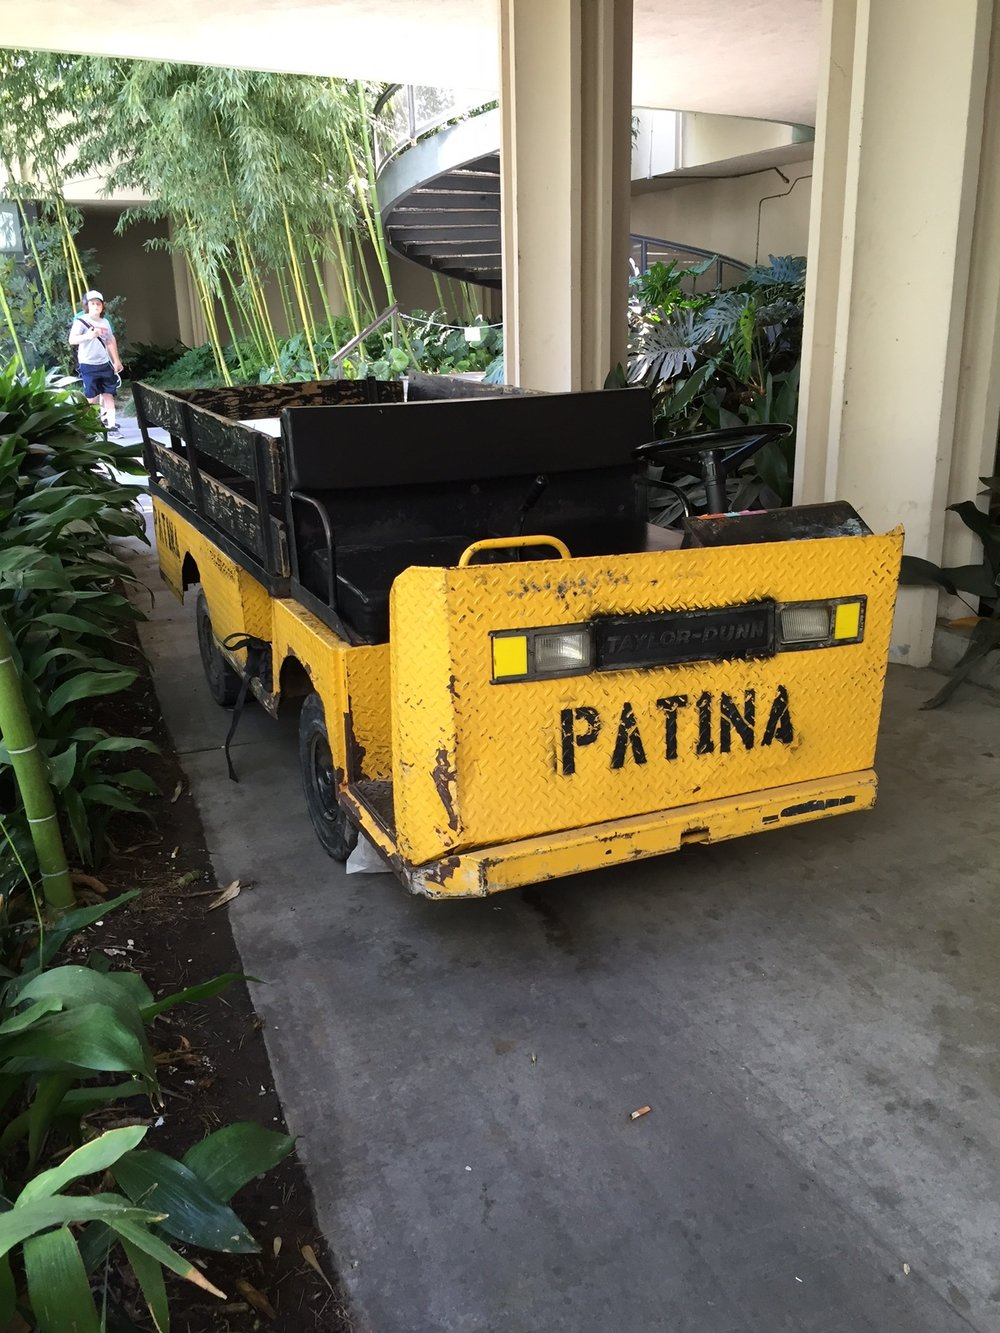 Delivery vehicle for Patina Restaurant at L.A. County Museum of Art